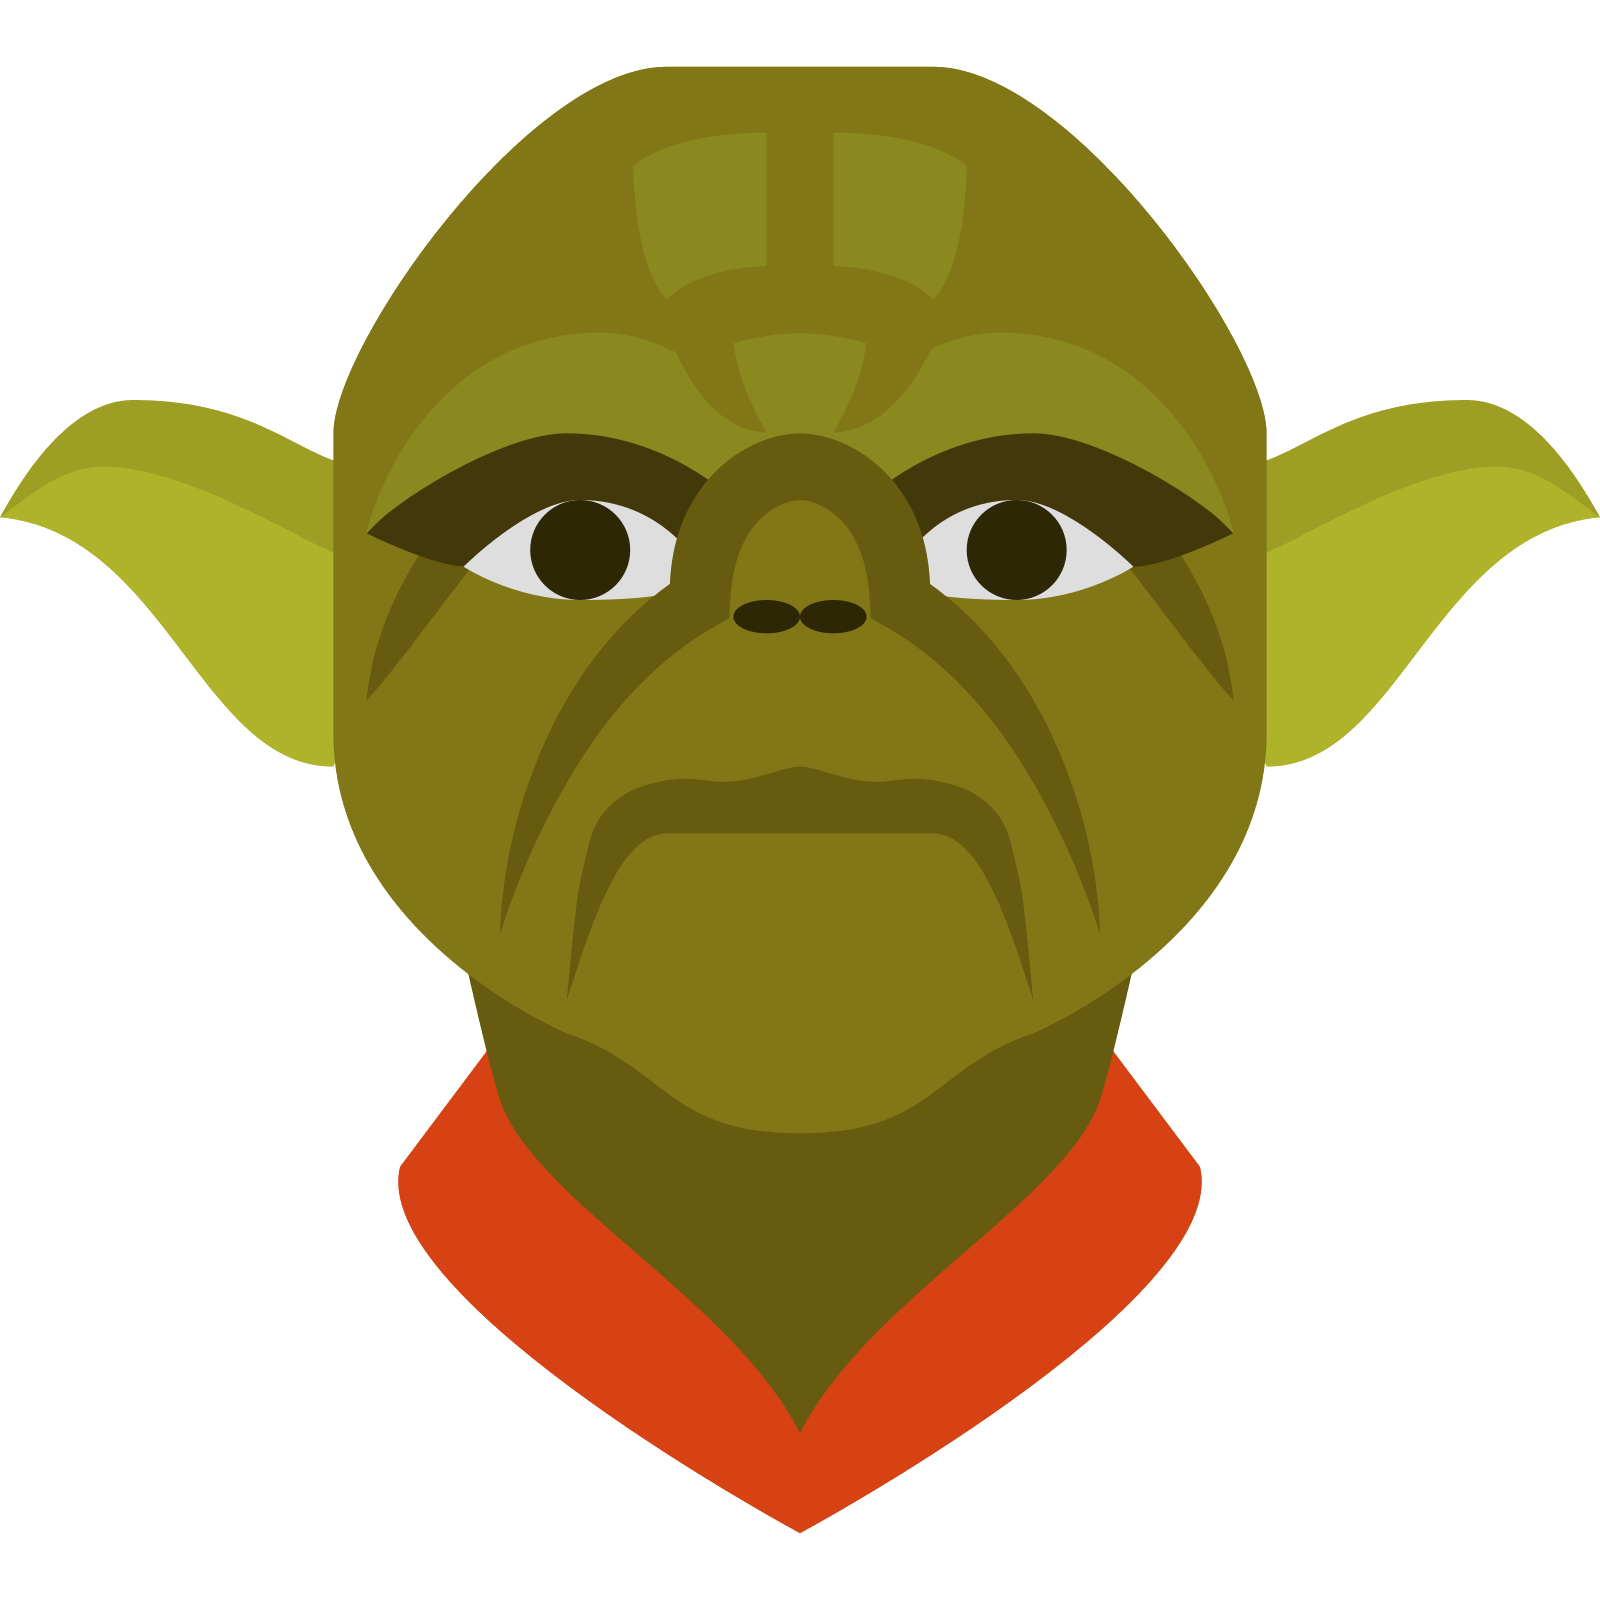 Yoda png. Icon free download and